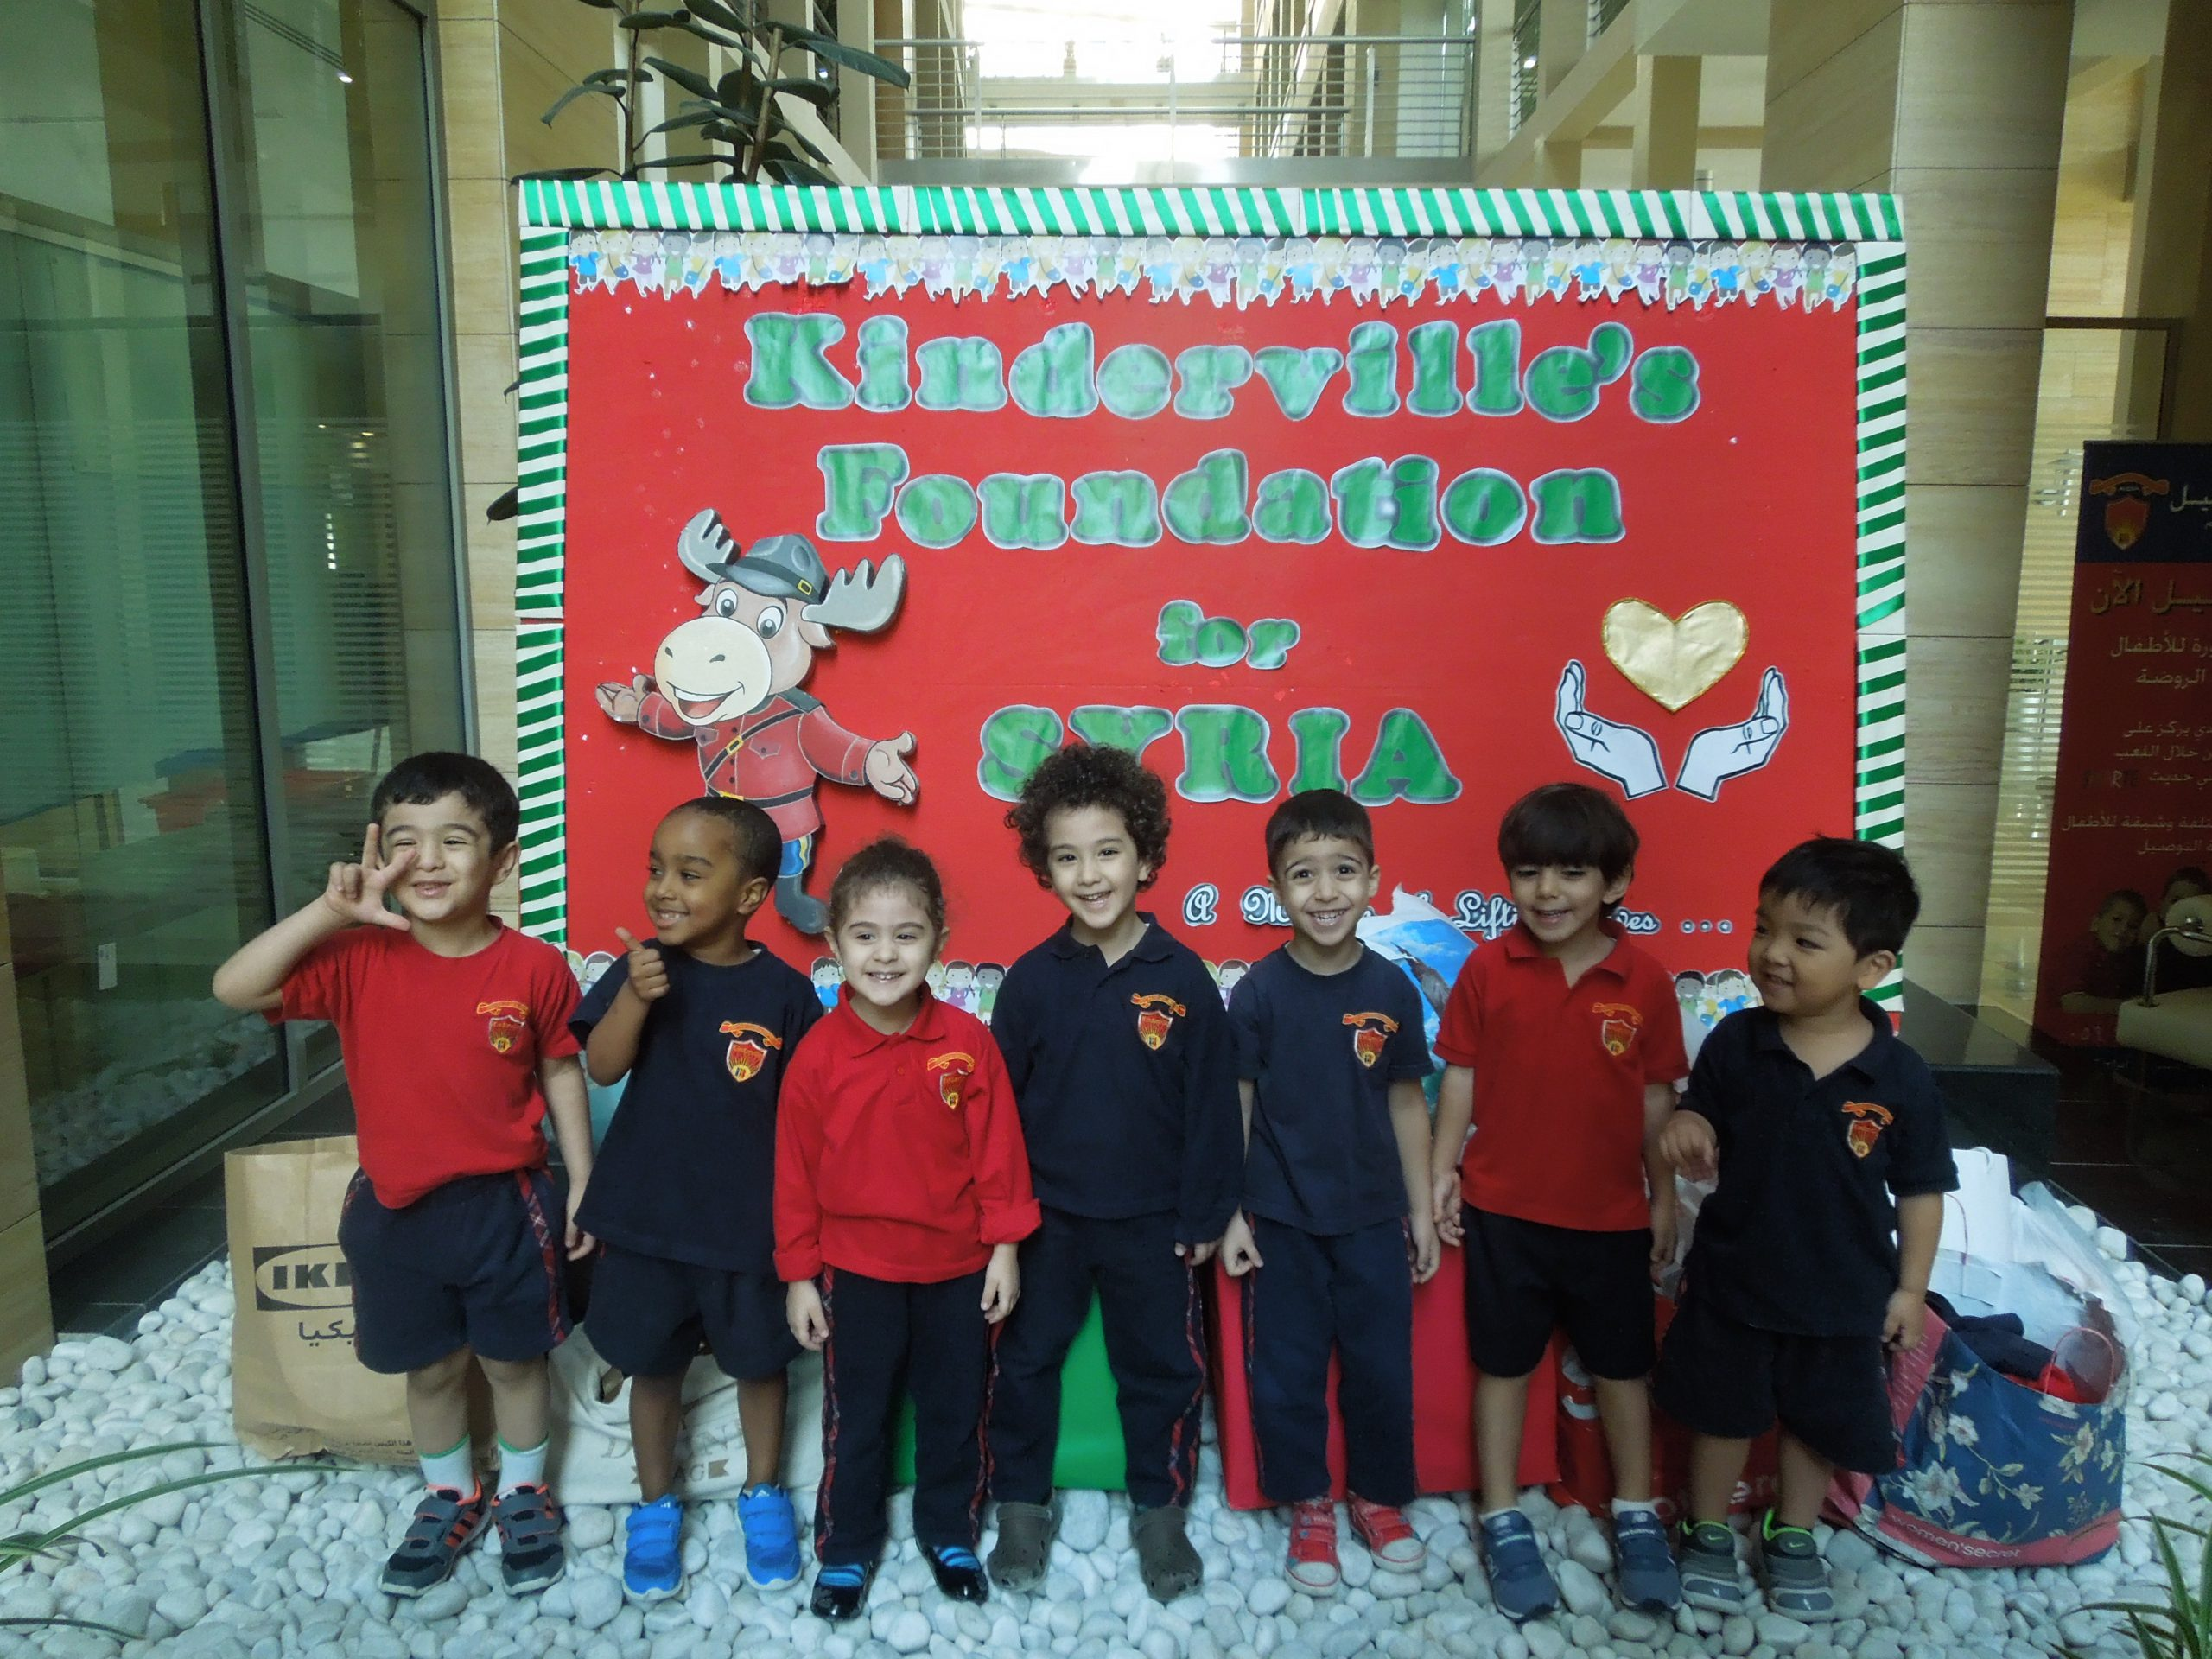 Kinderville Foundation for Syria